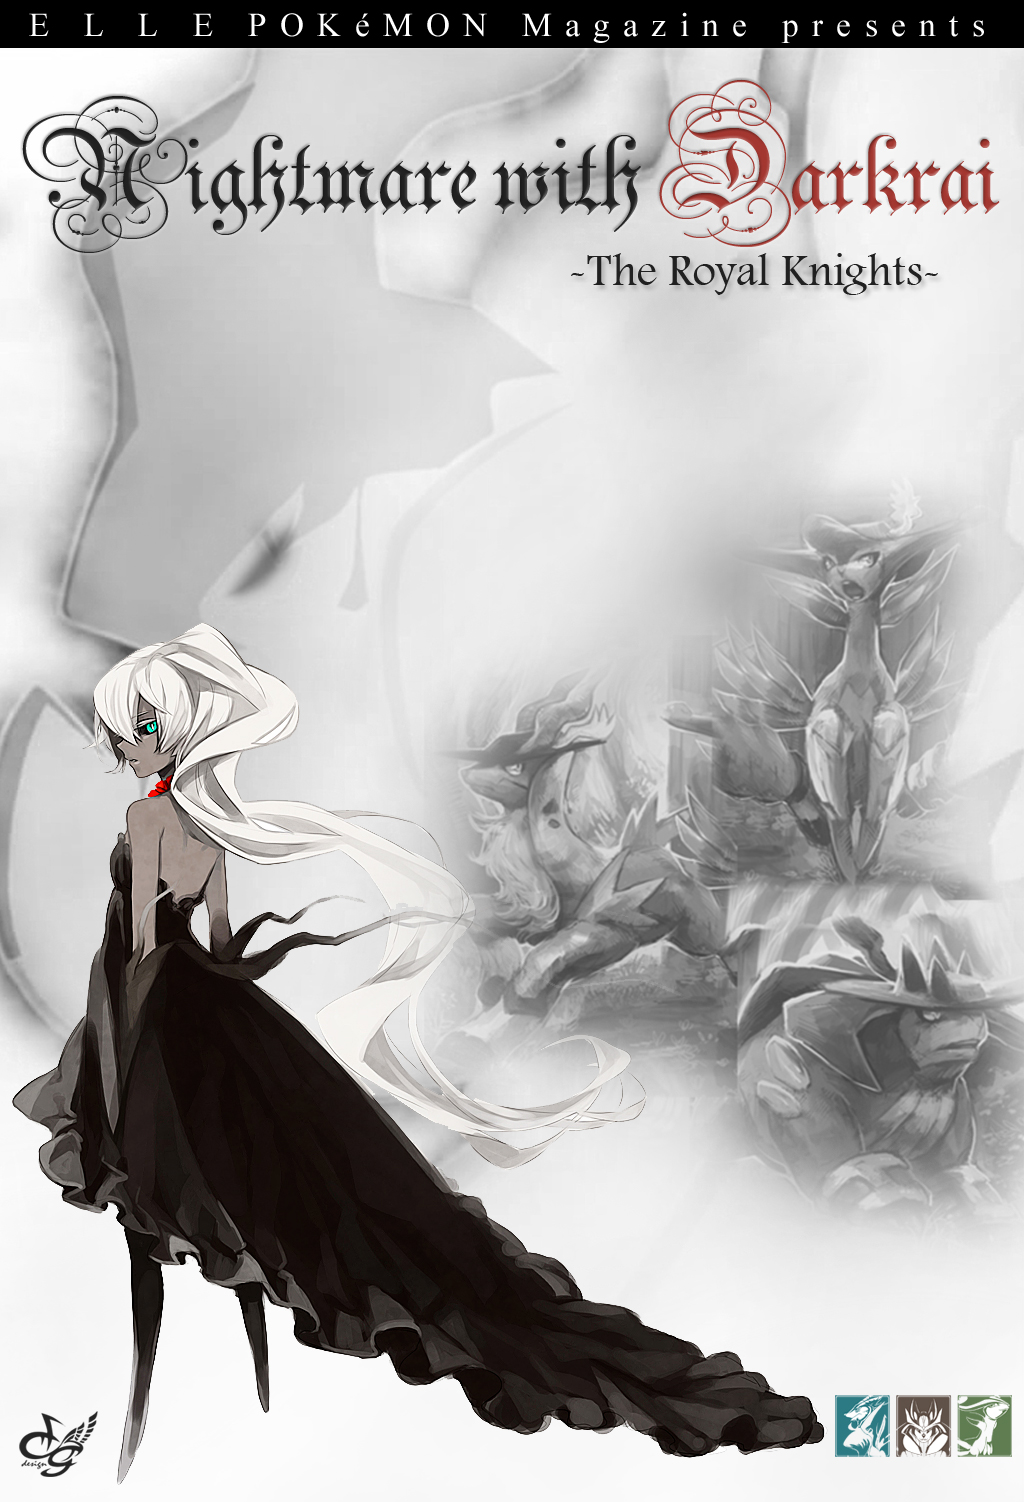 """Nigthmare With Darkrai"" – The Royal Knights – : Evil plans"